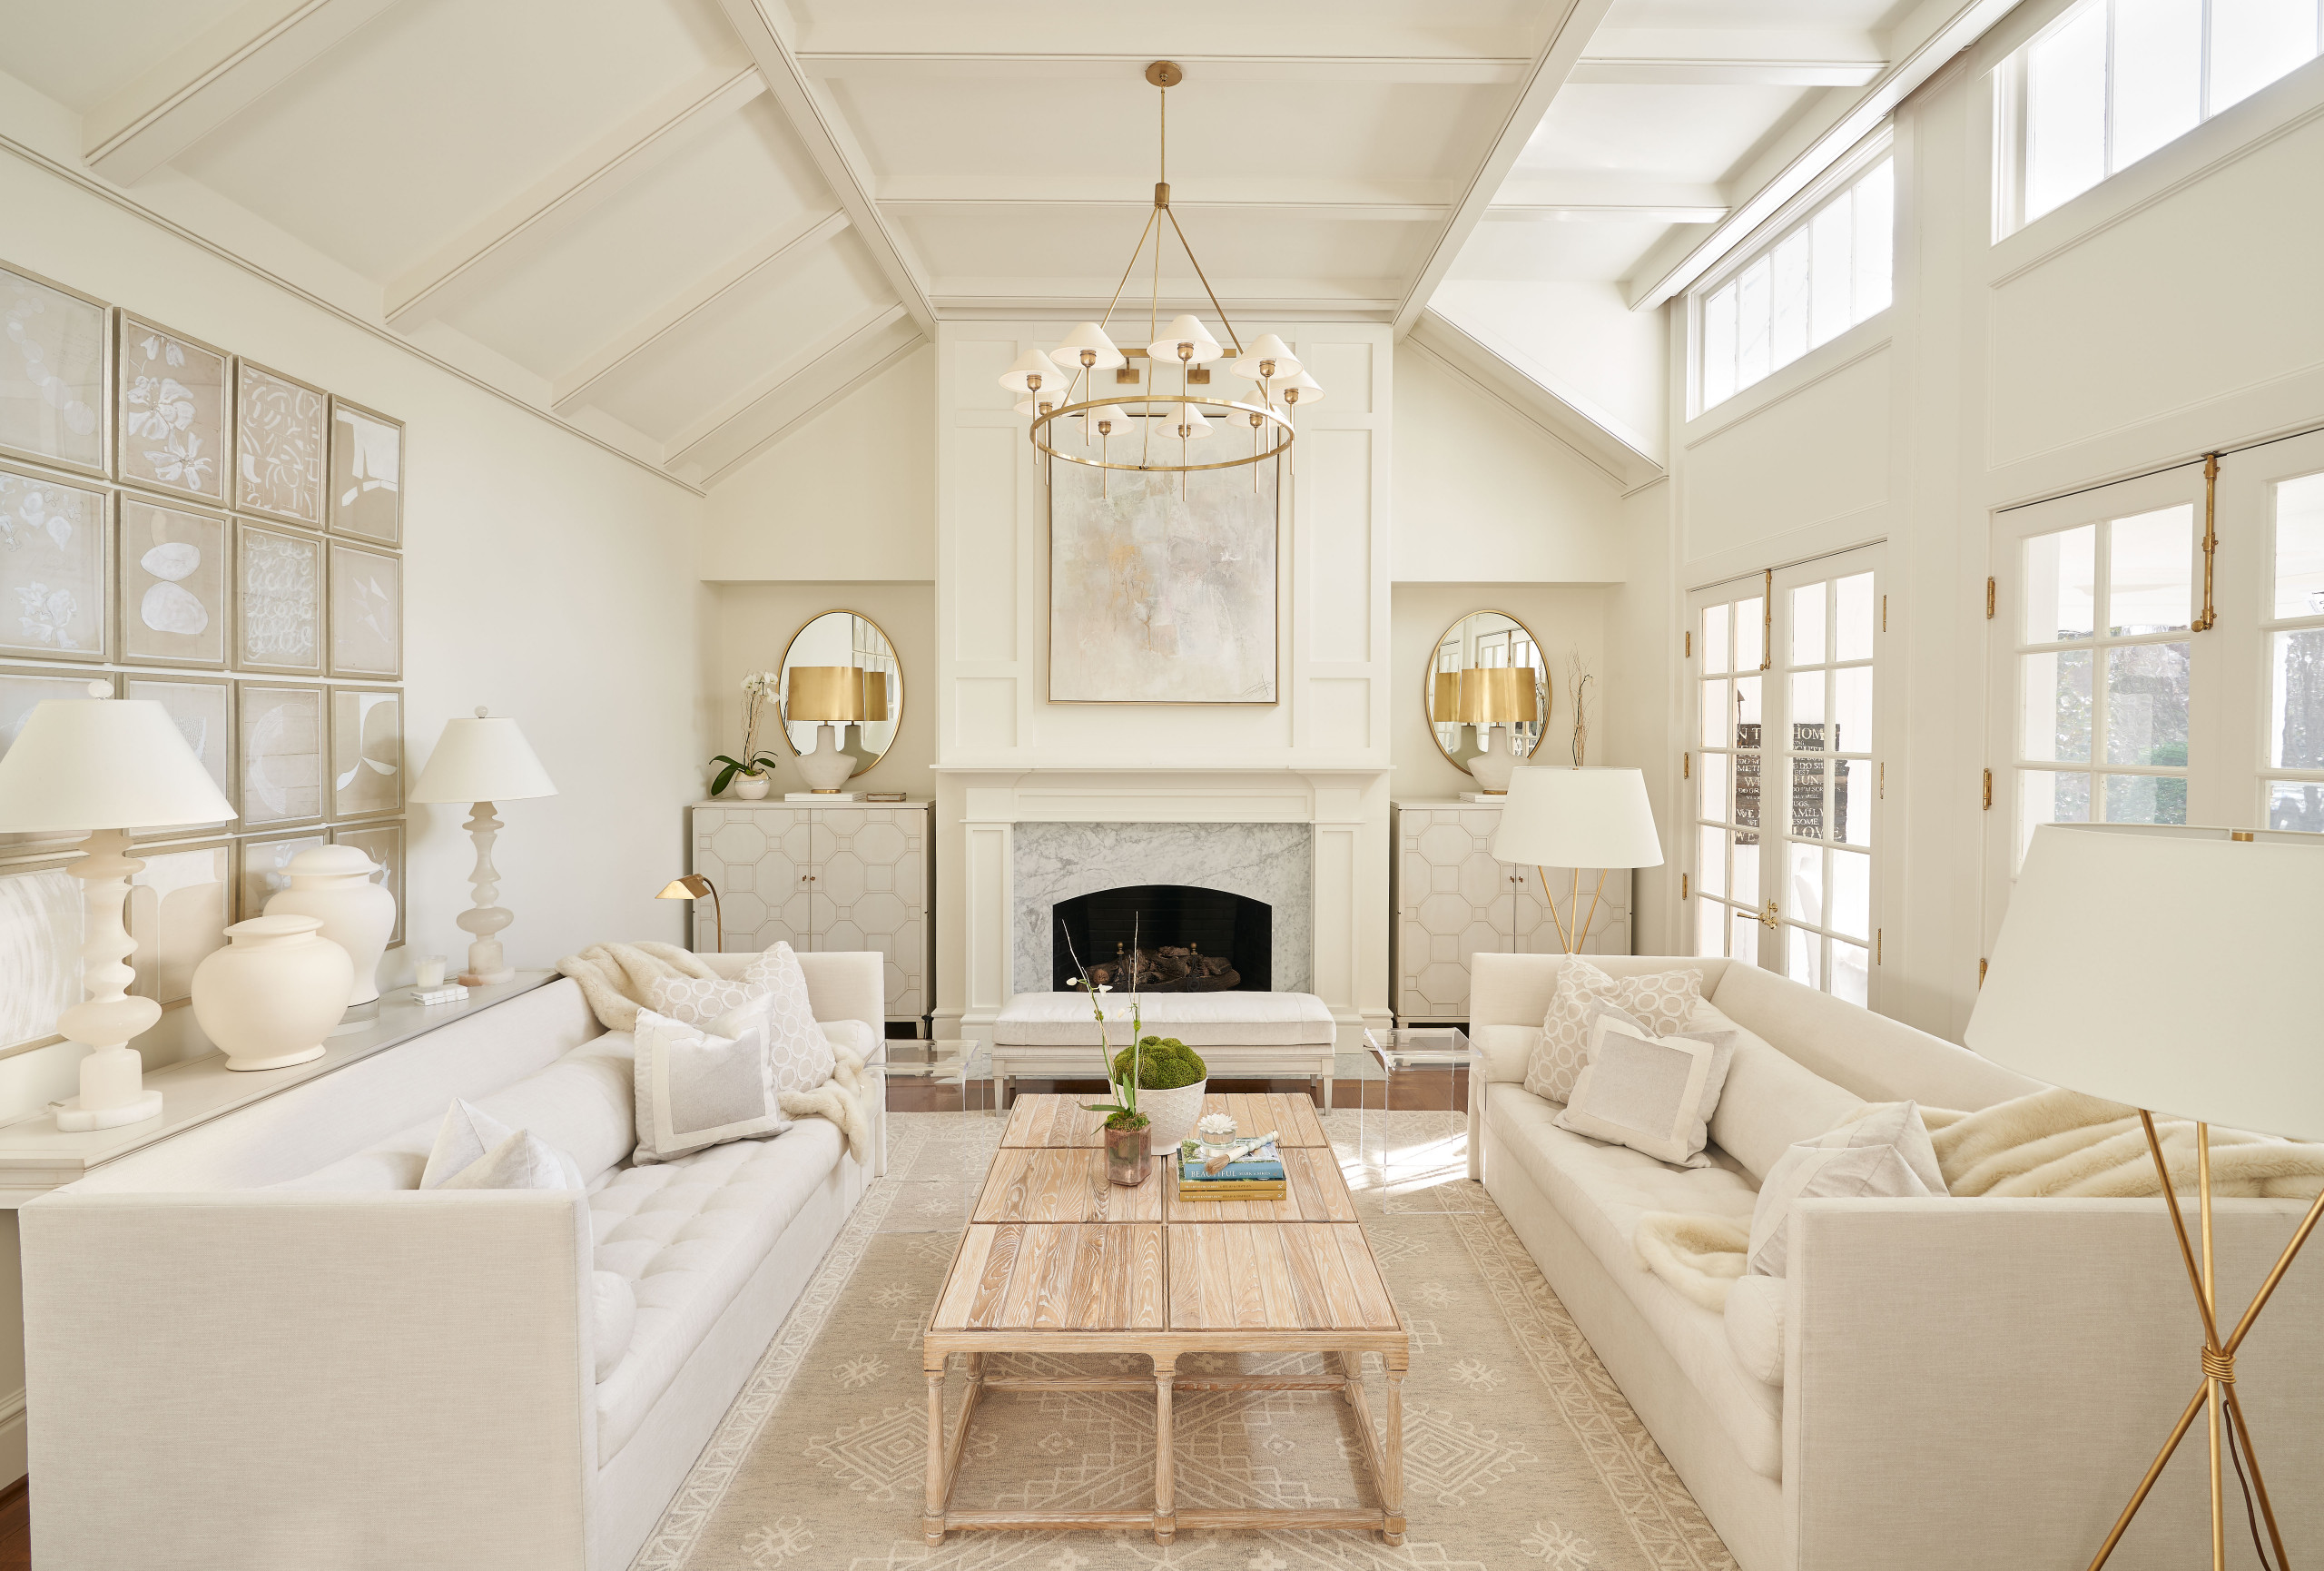 75 Beautiful Shabby Chic Style Home Design Pictures Ideas January 2021 Houzz